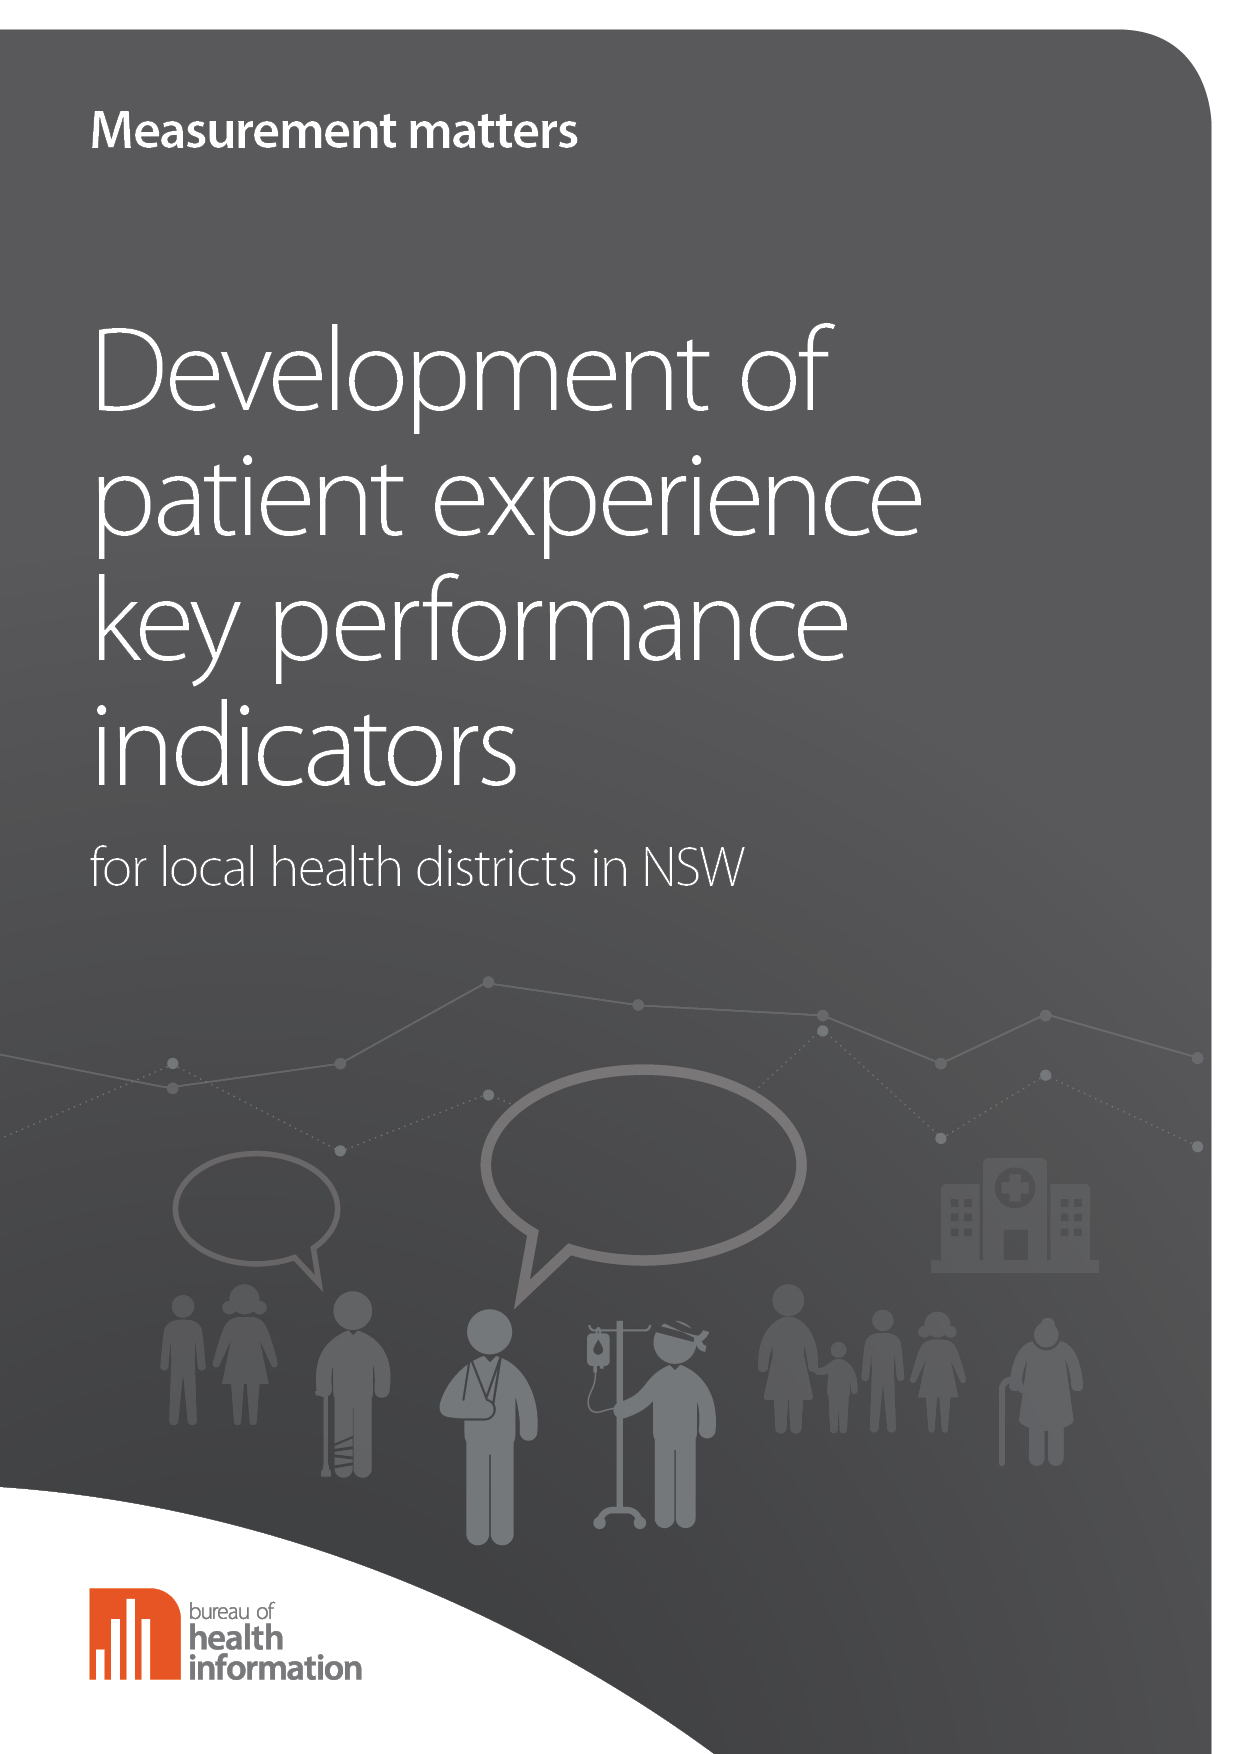 Development of patient experience KPIs cover image